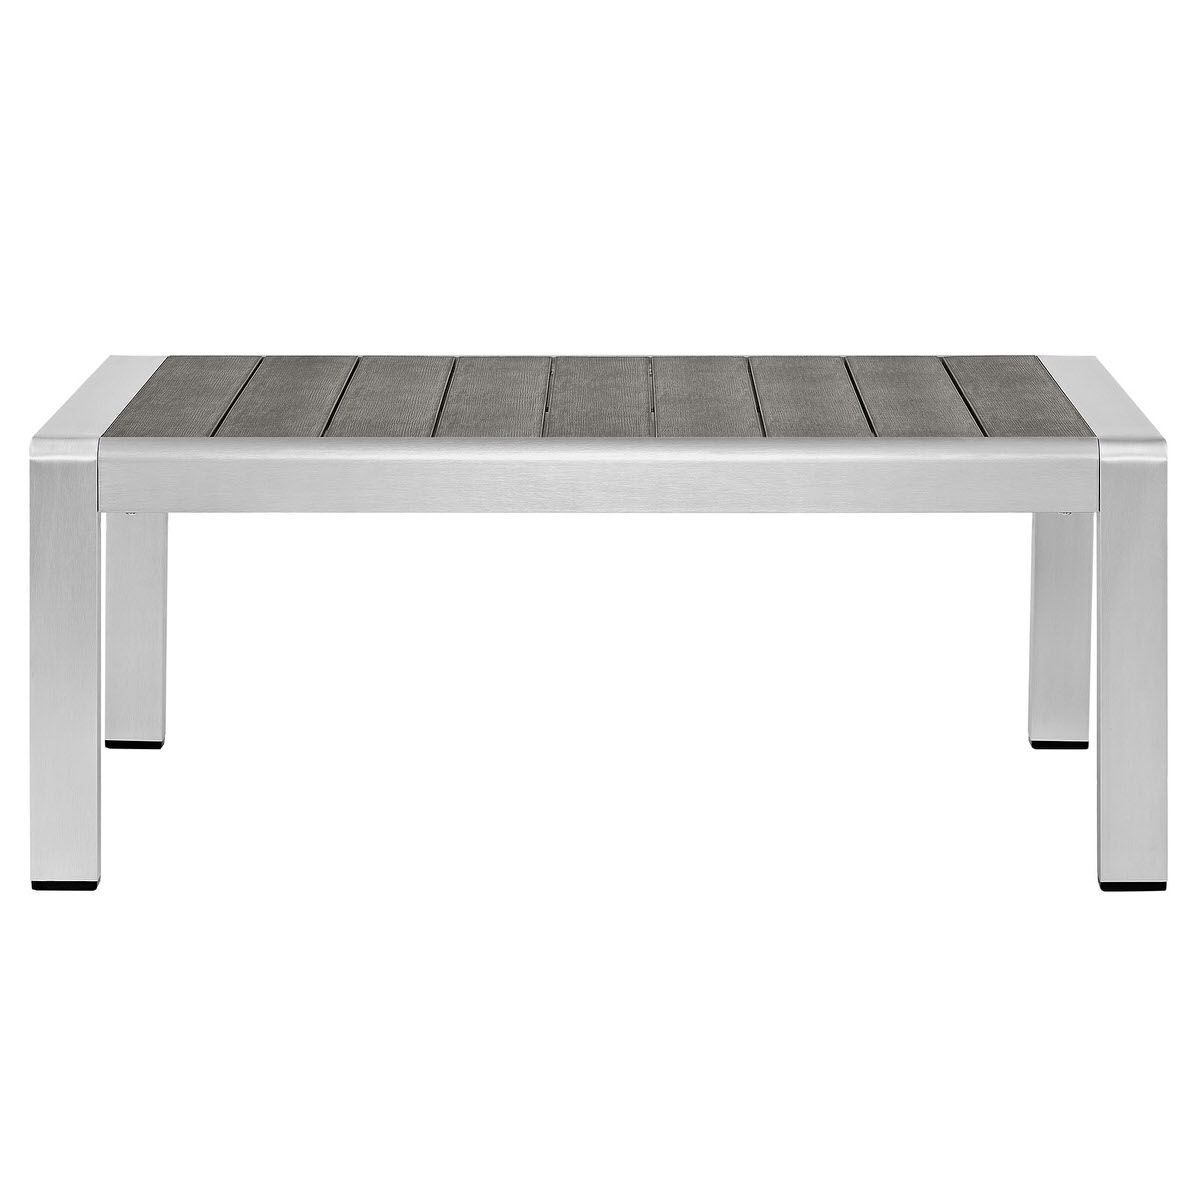 Shore outdoor patio aluminum coffee table silver gray by modway geotapseo Gallery